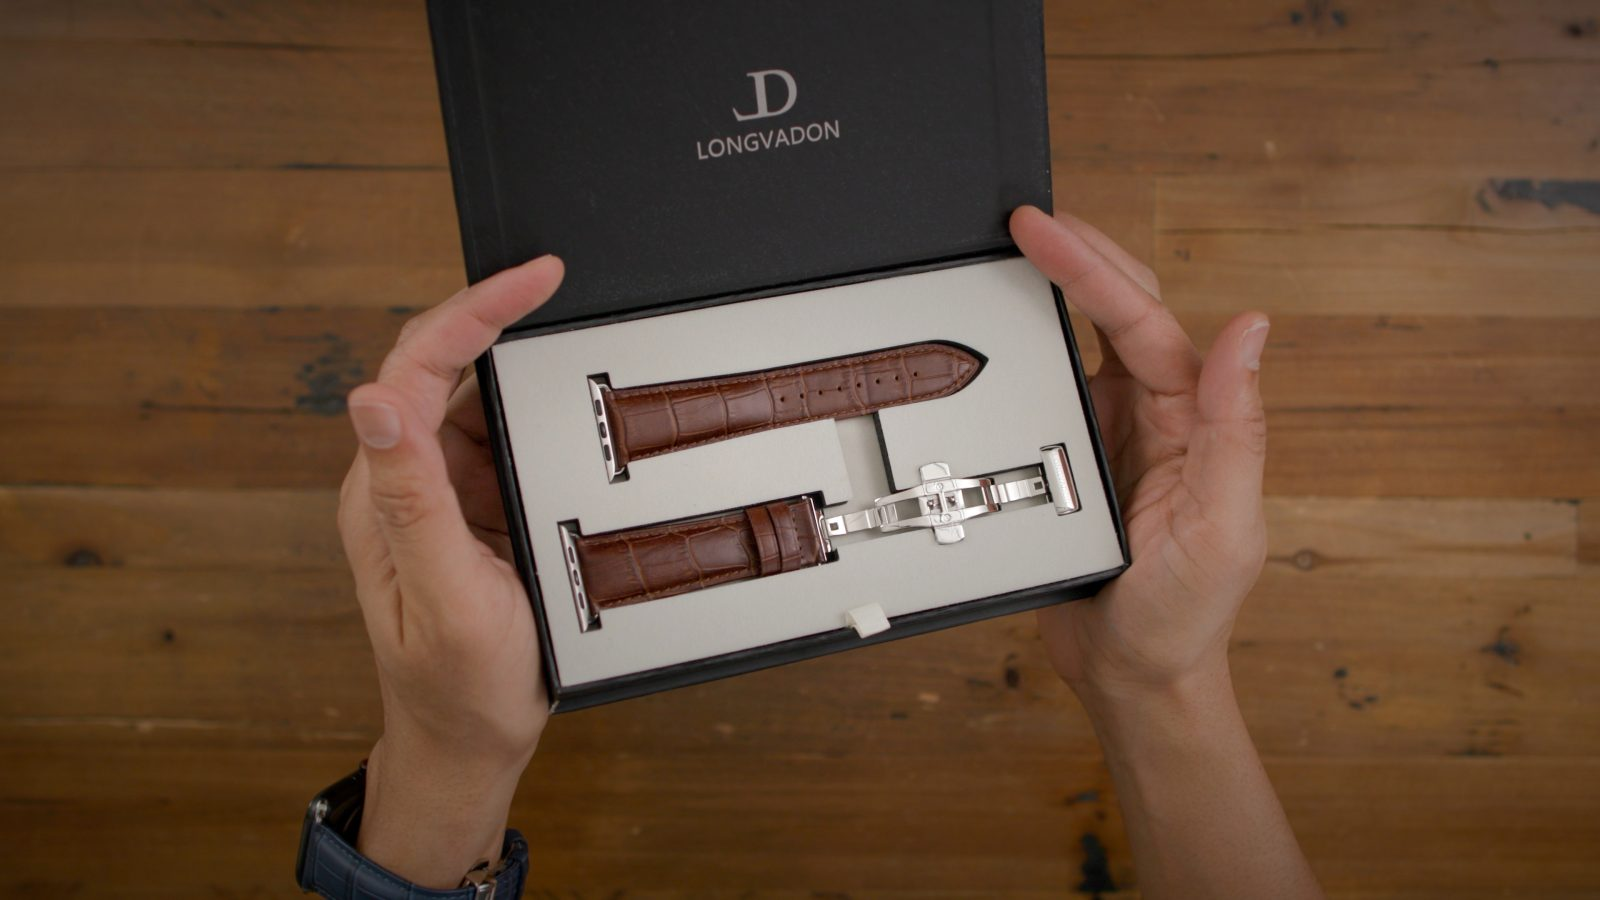 Upgrade your Apple Watch w/ Longvadon's timeless watch bands 15% off